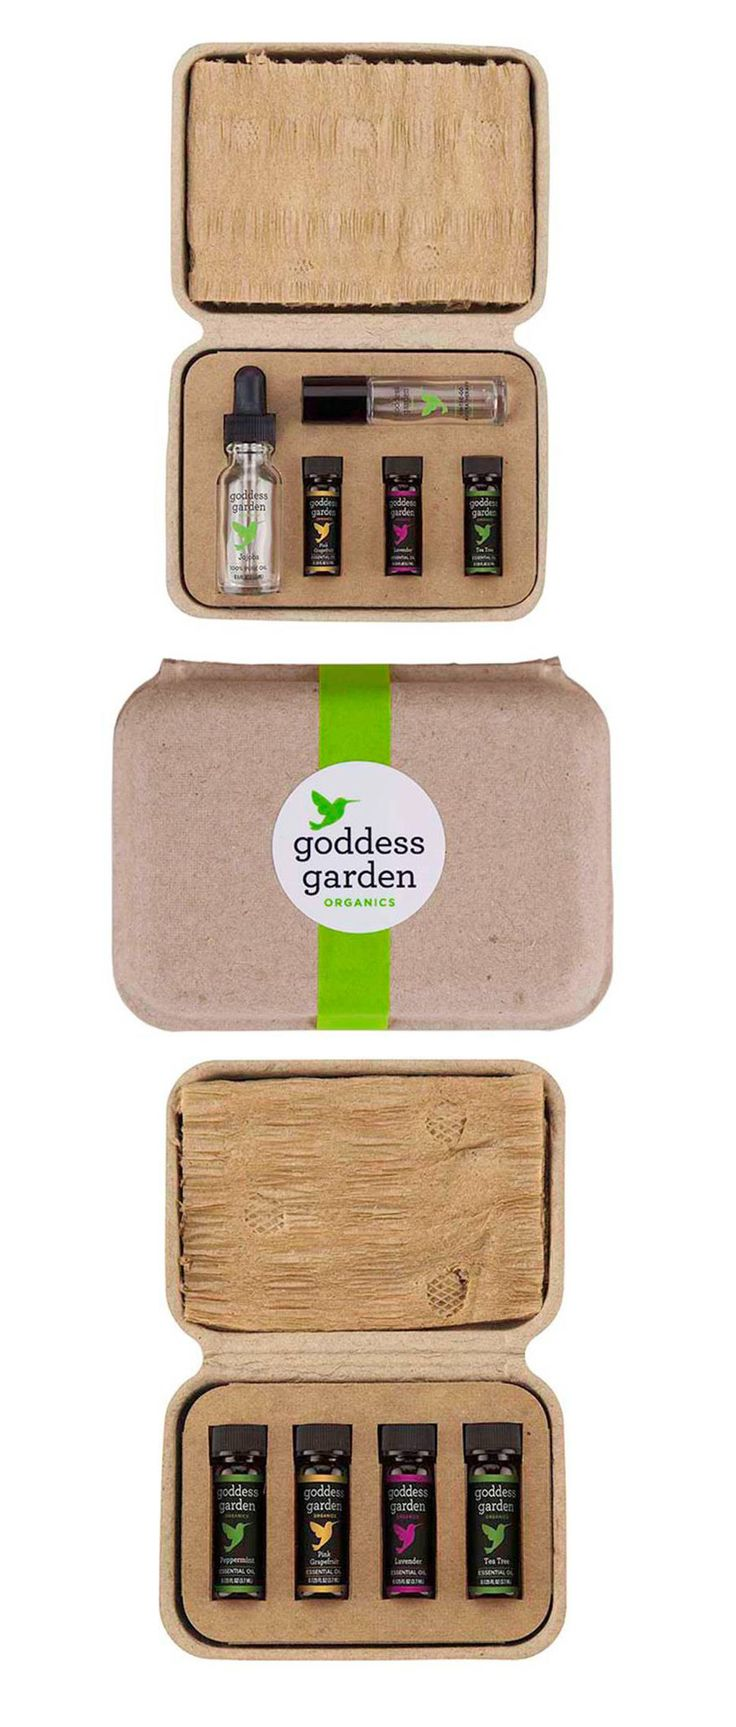 Goddess Garden's new Organic Essential Oils. Packaged with custom inserts and molded pulp clamshells by Sustainable Packaging Industries. Discover your scent personality!